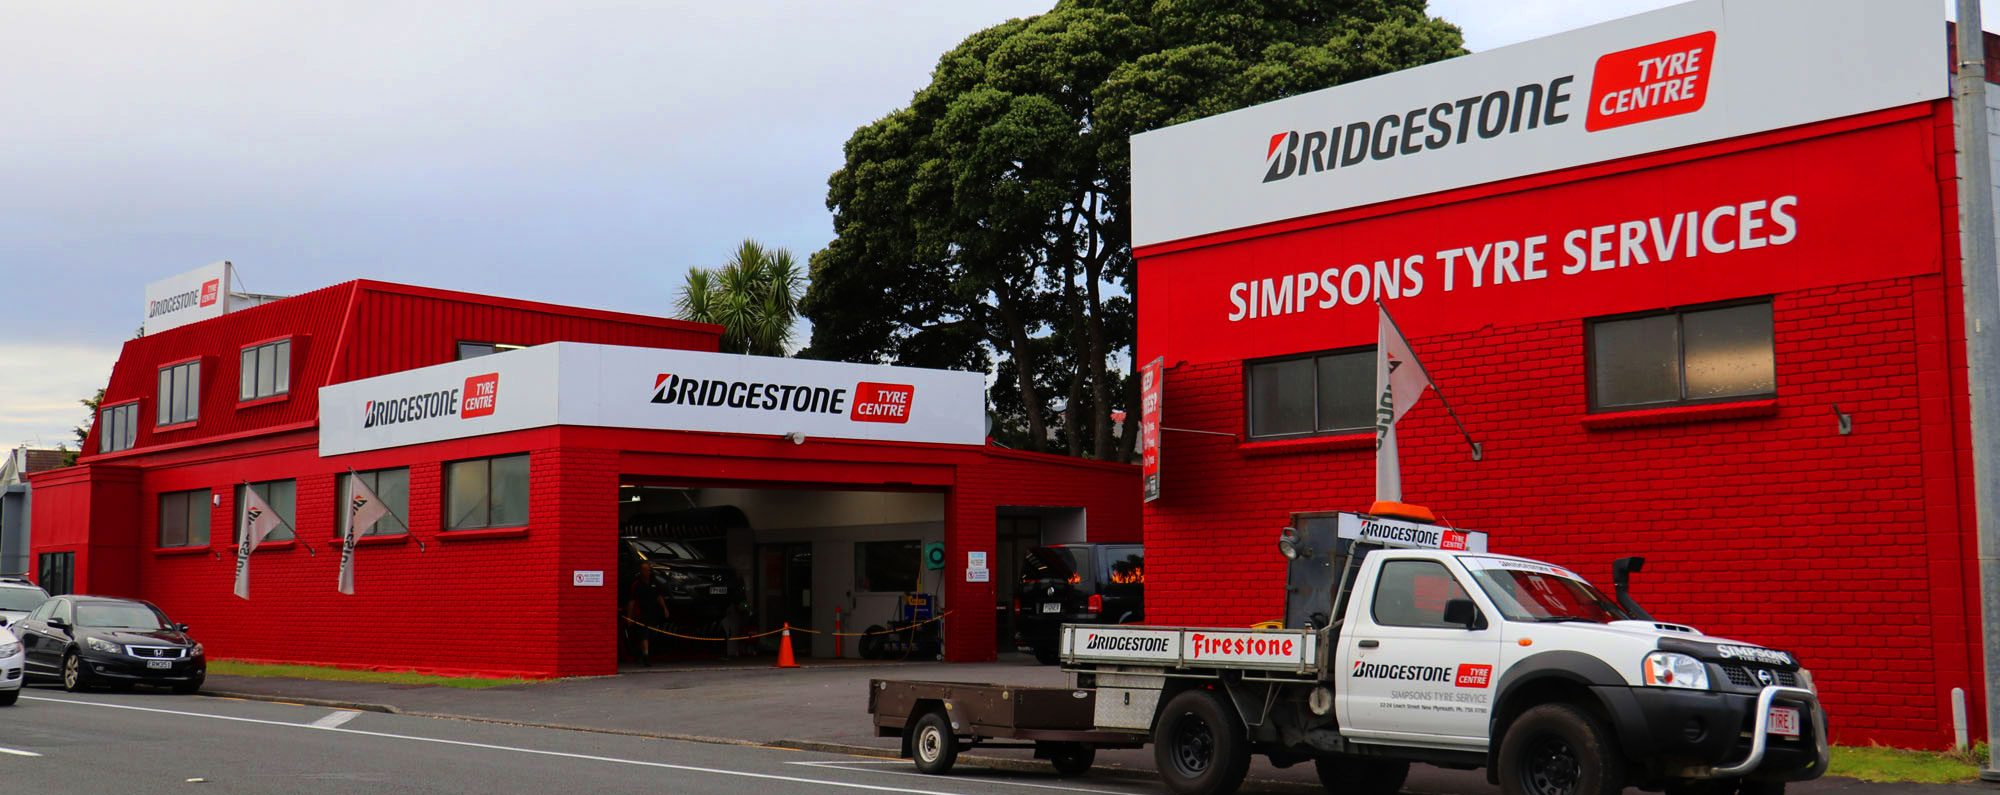 Simpsons Tyres Bridgestone Tyre Centre